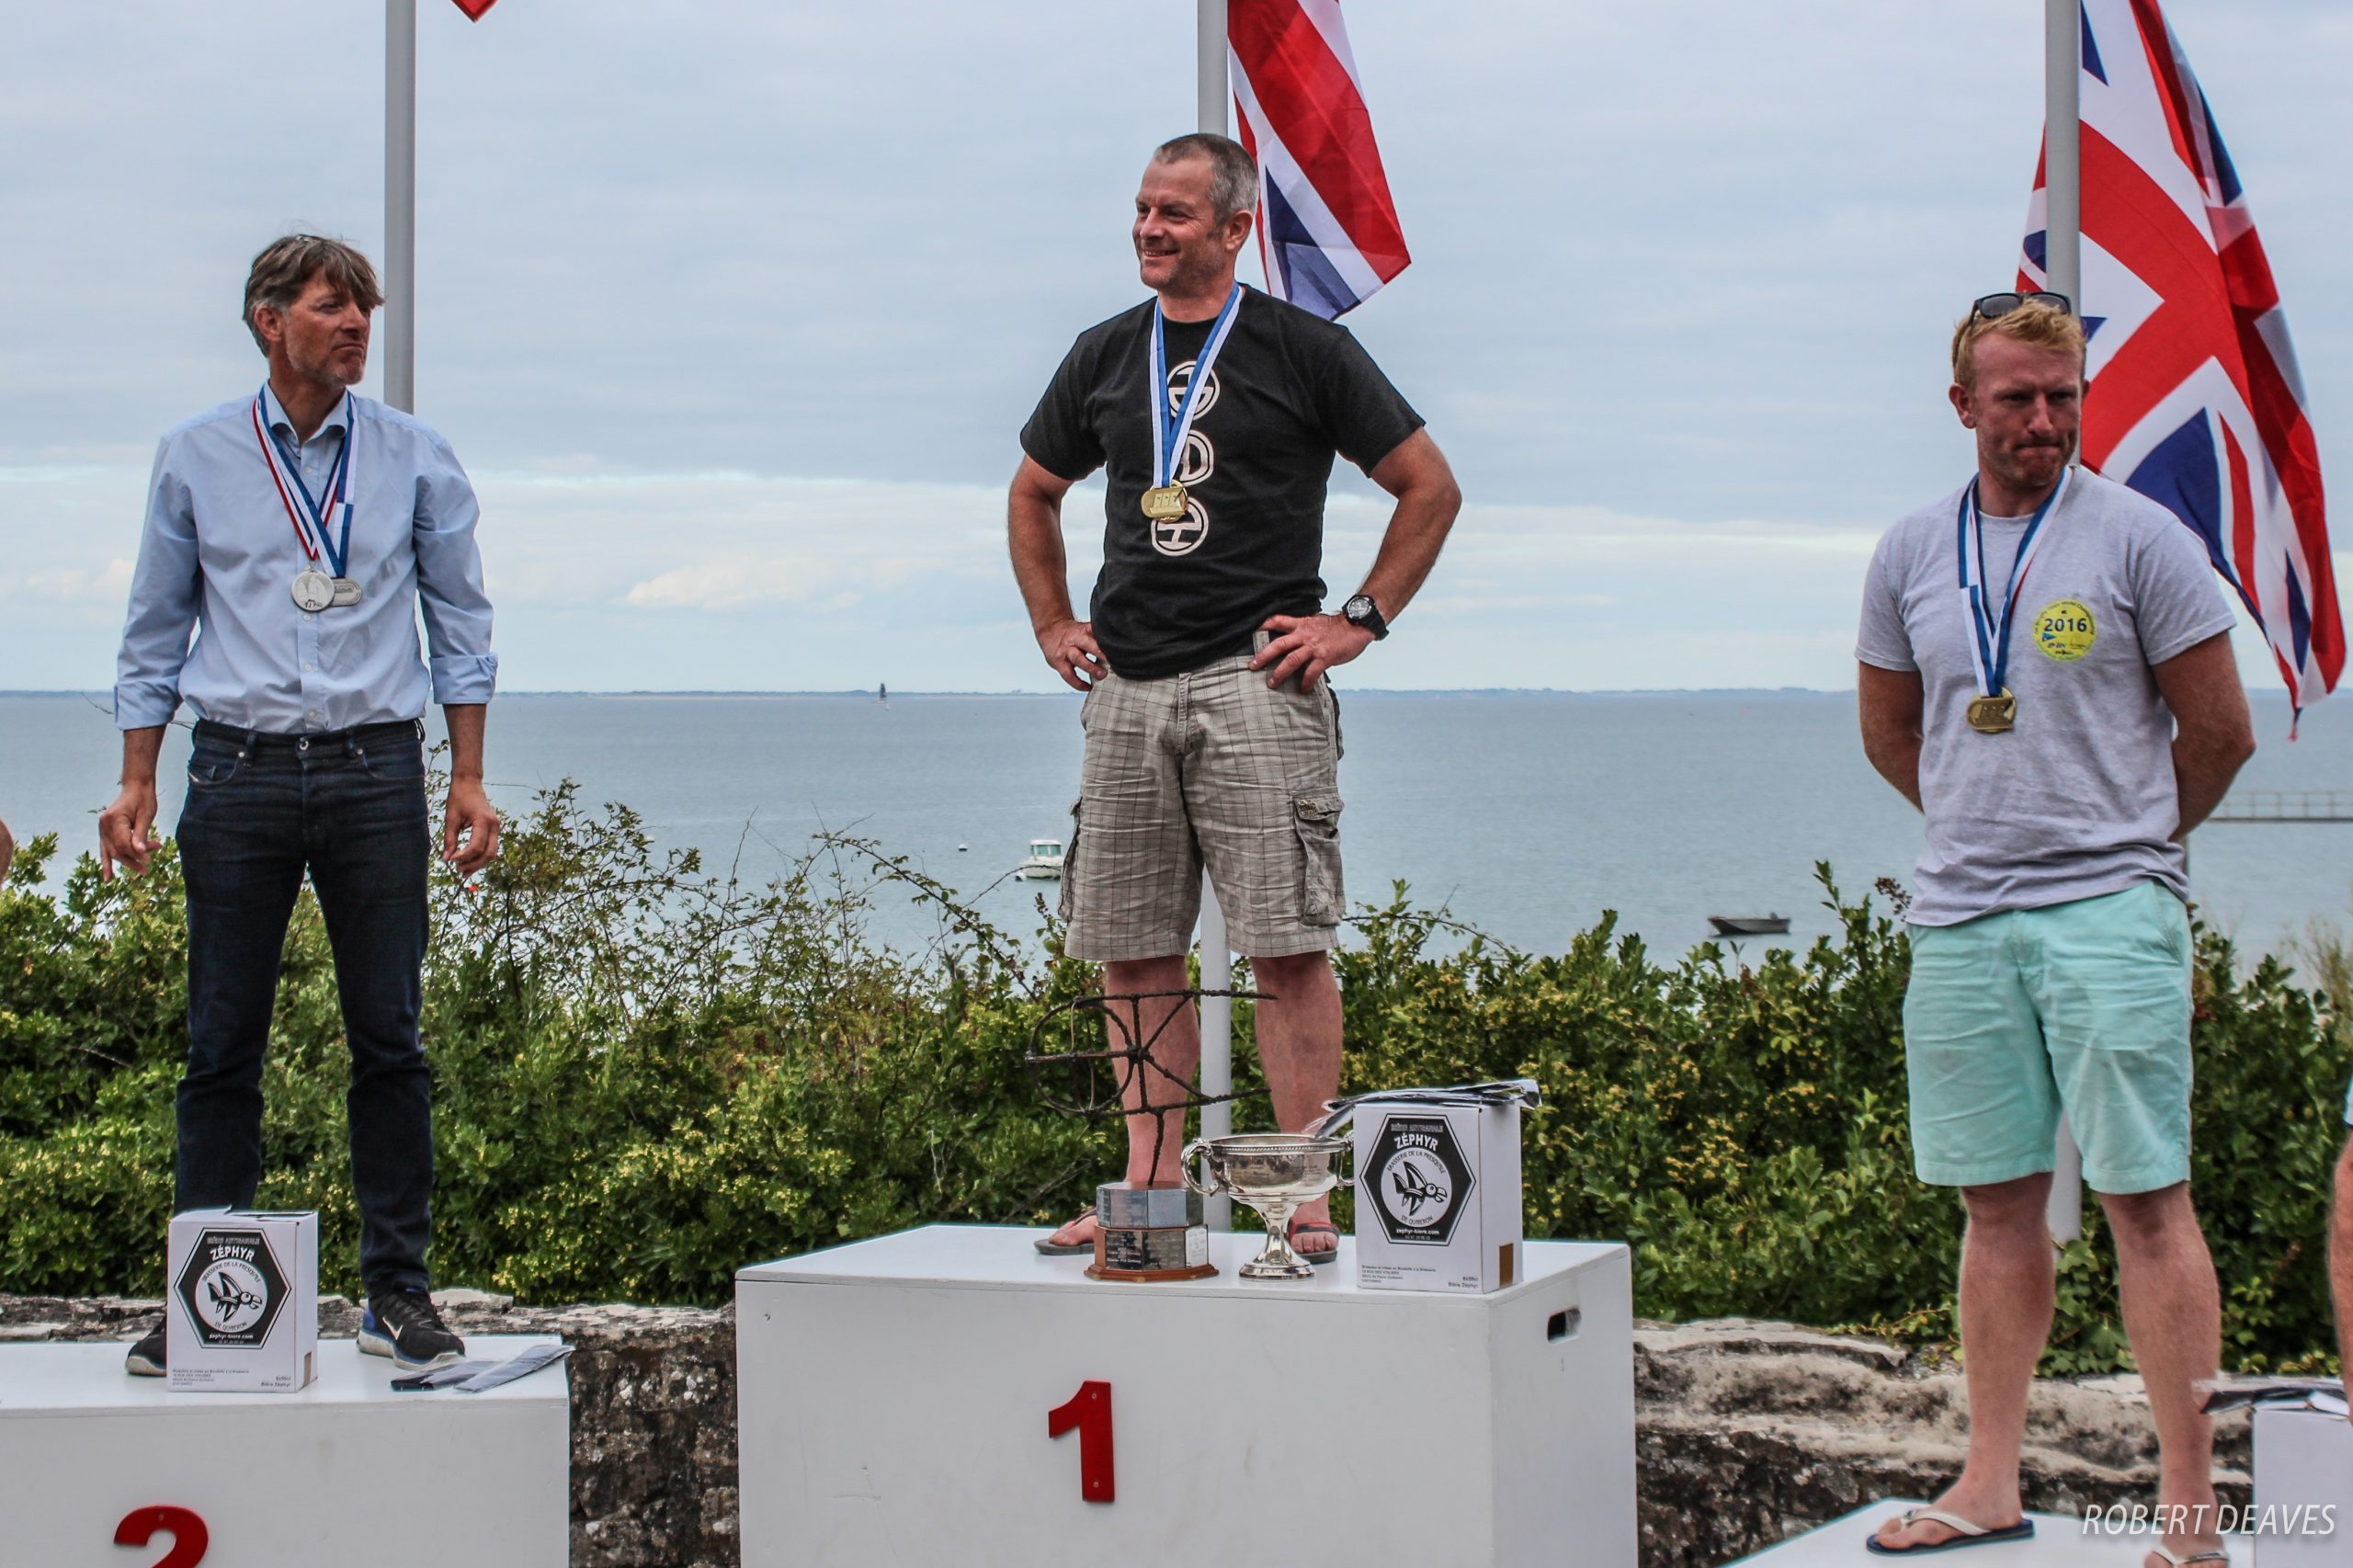 Jim Hunt at the top of the OK Dinghy podium for the second time. Photo Robert Deaves.